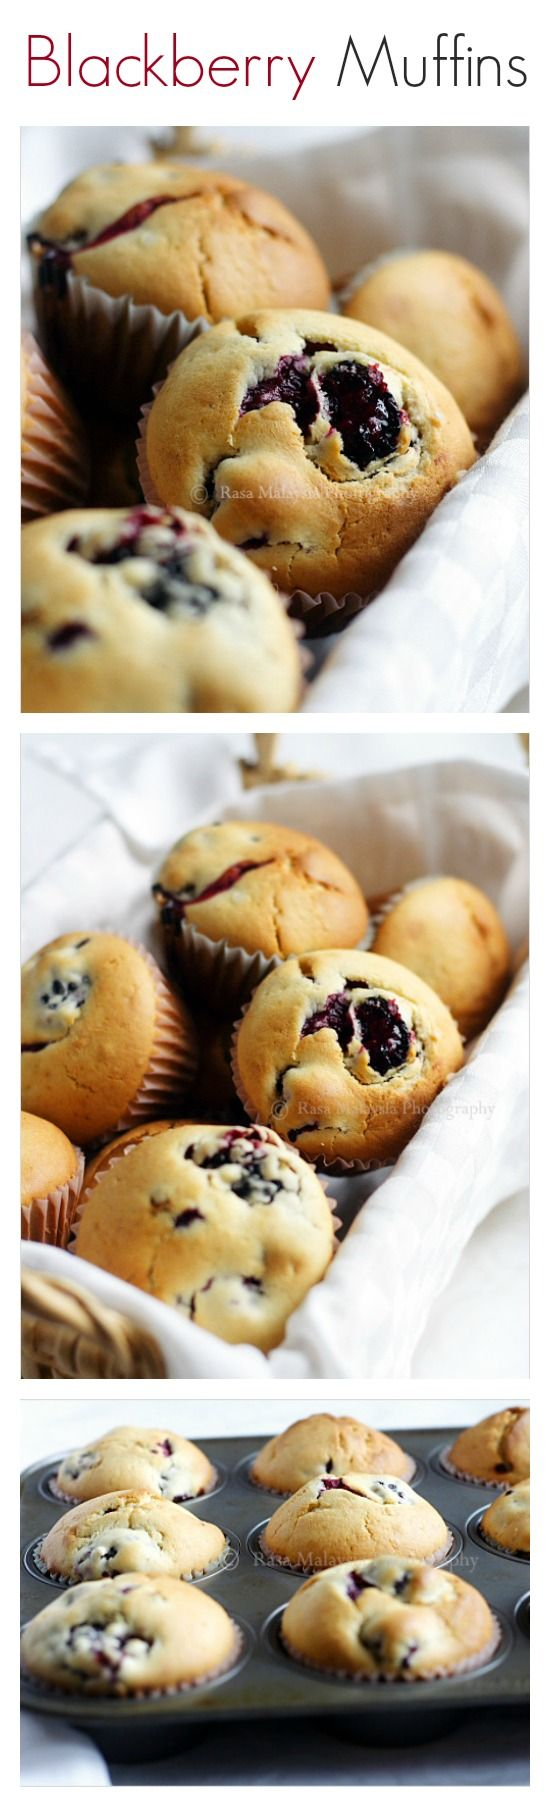 Mother's Day breakfast idea - Blackberry Muffins - moist and delicious muffins with loads of fresh blackberries   rasamalaysia.com